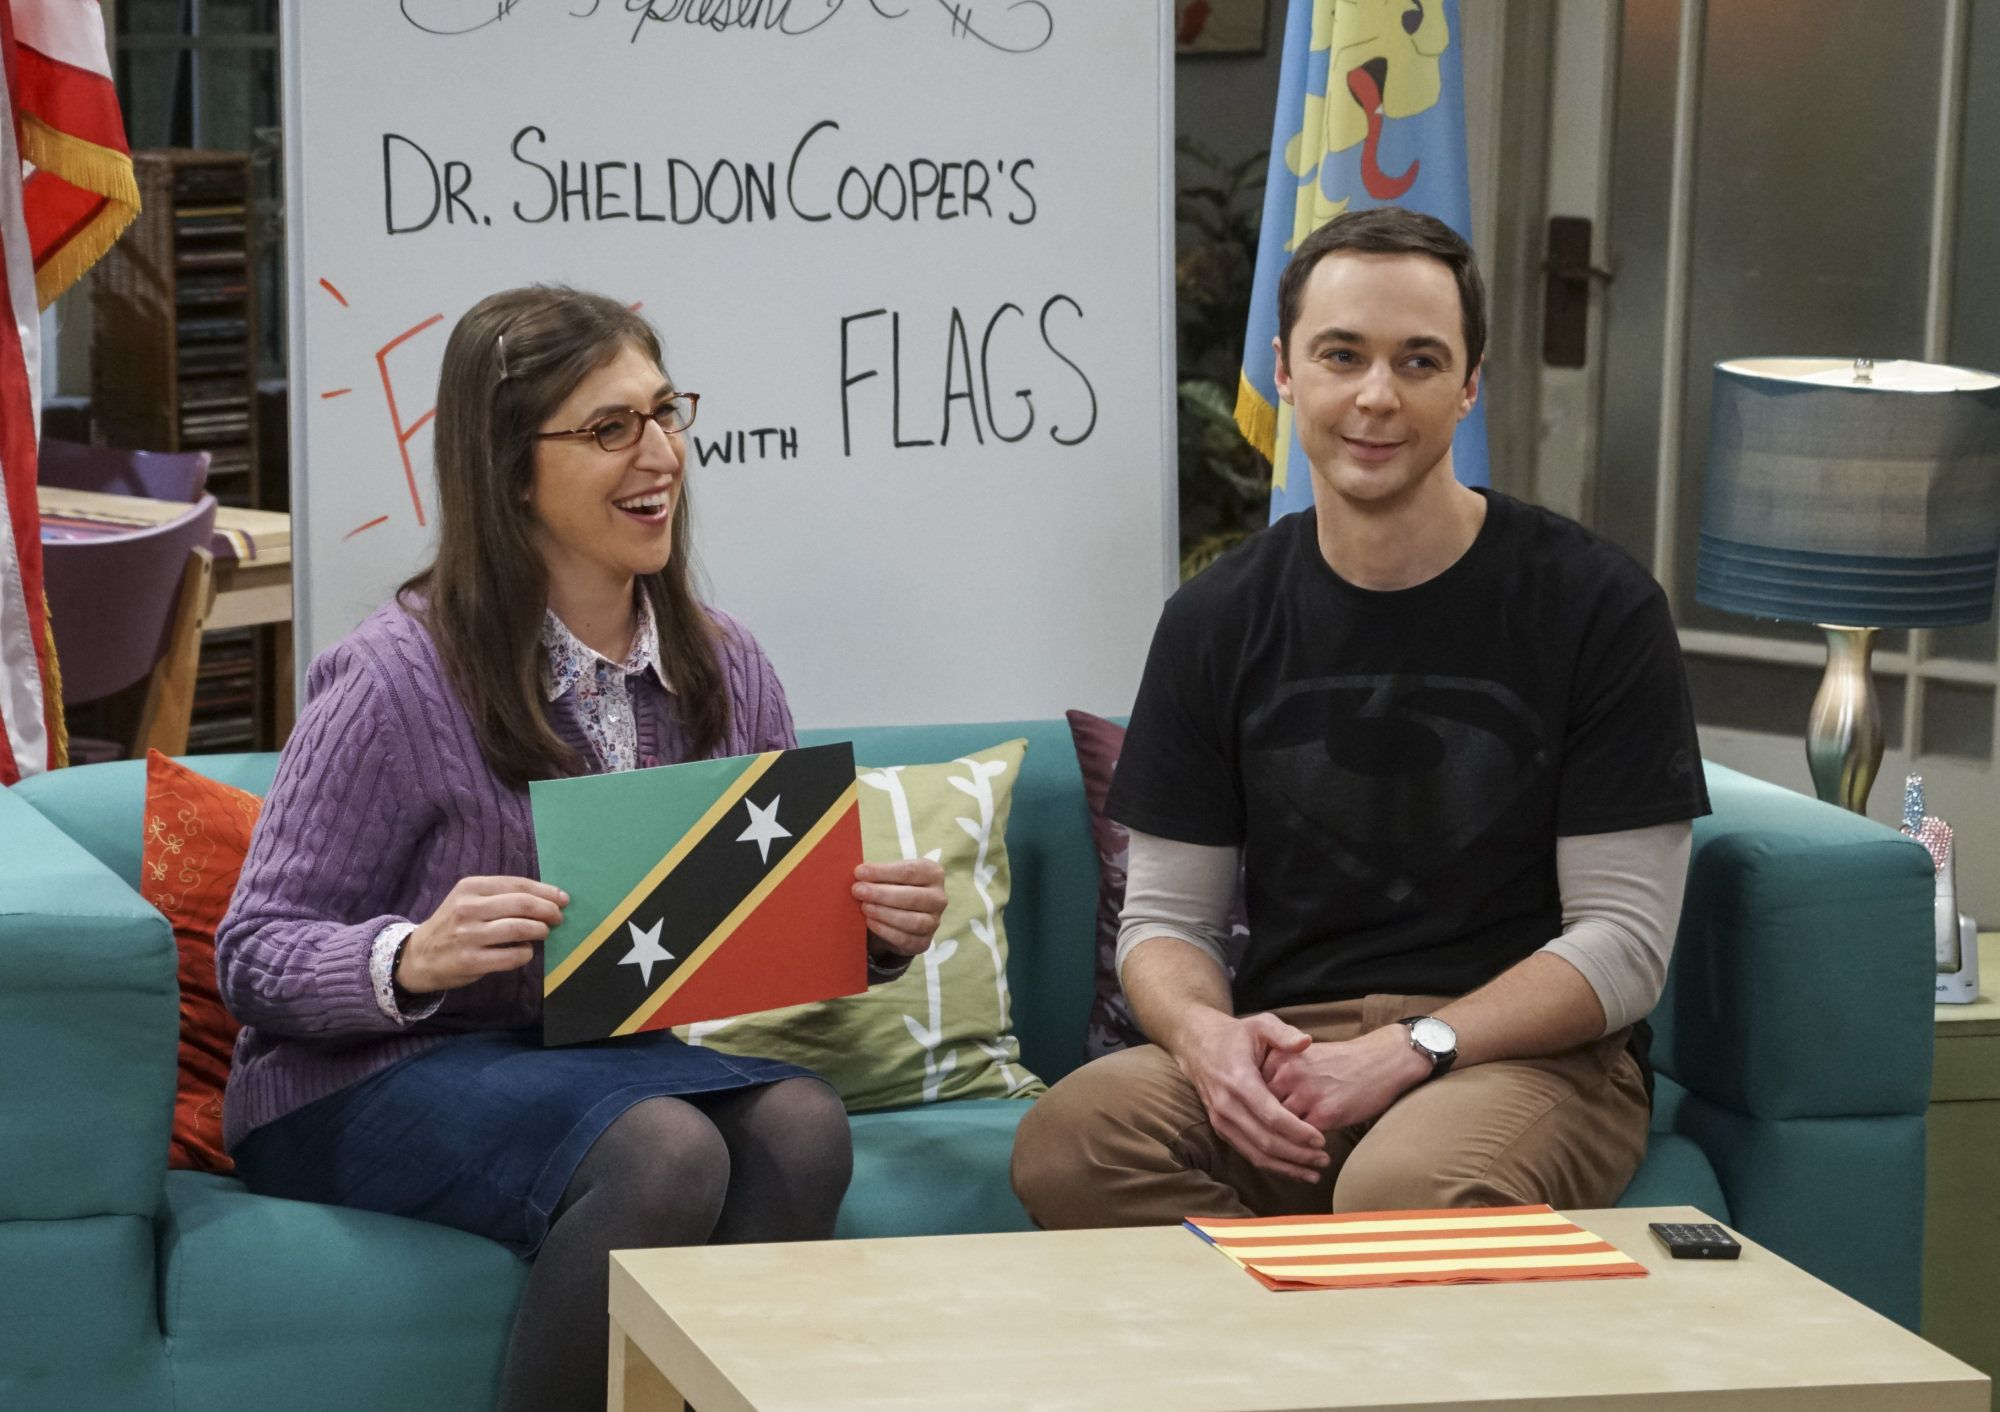 LOS ANGELES - OCTOBER 18: The Veracity Elasticity' -- Pictured: Amy Farrah Fowler (Mayim Bialik) and Sheldon Cooper (Jim Parsons). Sheldon and Amy present a new 'Fun With Flags' live from Penny's apartment, on THE BIG BANG THEORY, Thursday, Nov. 3 (8:00-8:31 PM, ET/PT), on the CBS Television Network. (Photo by Monty Brinton/CBS via Getty Images)